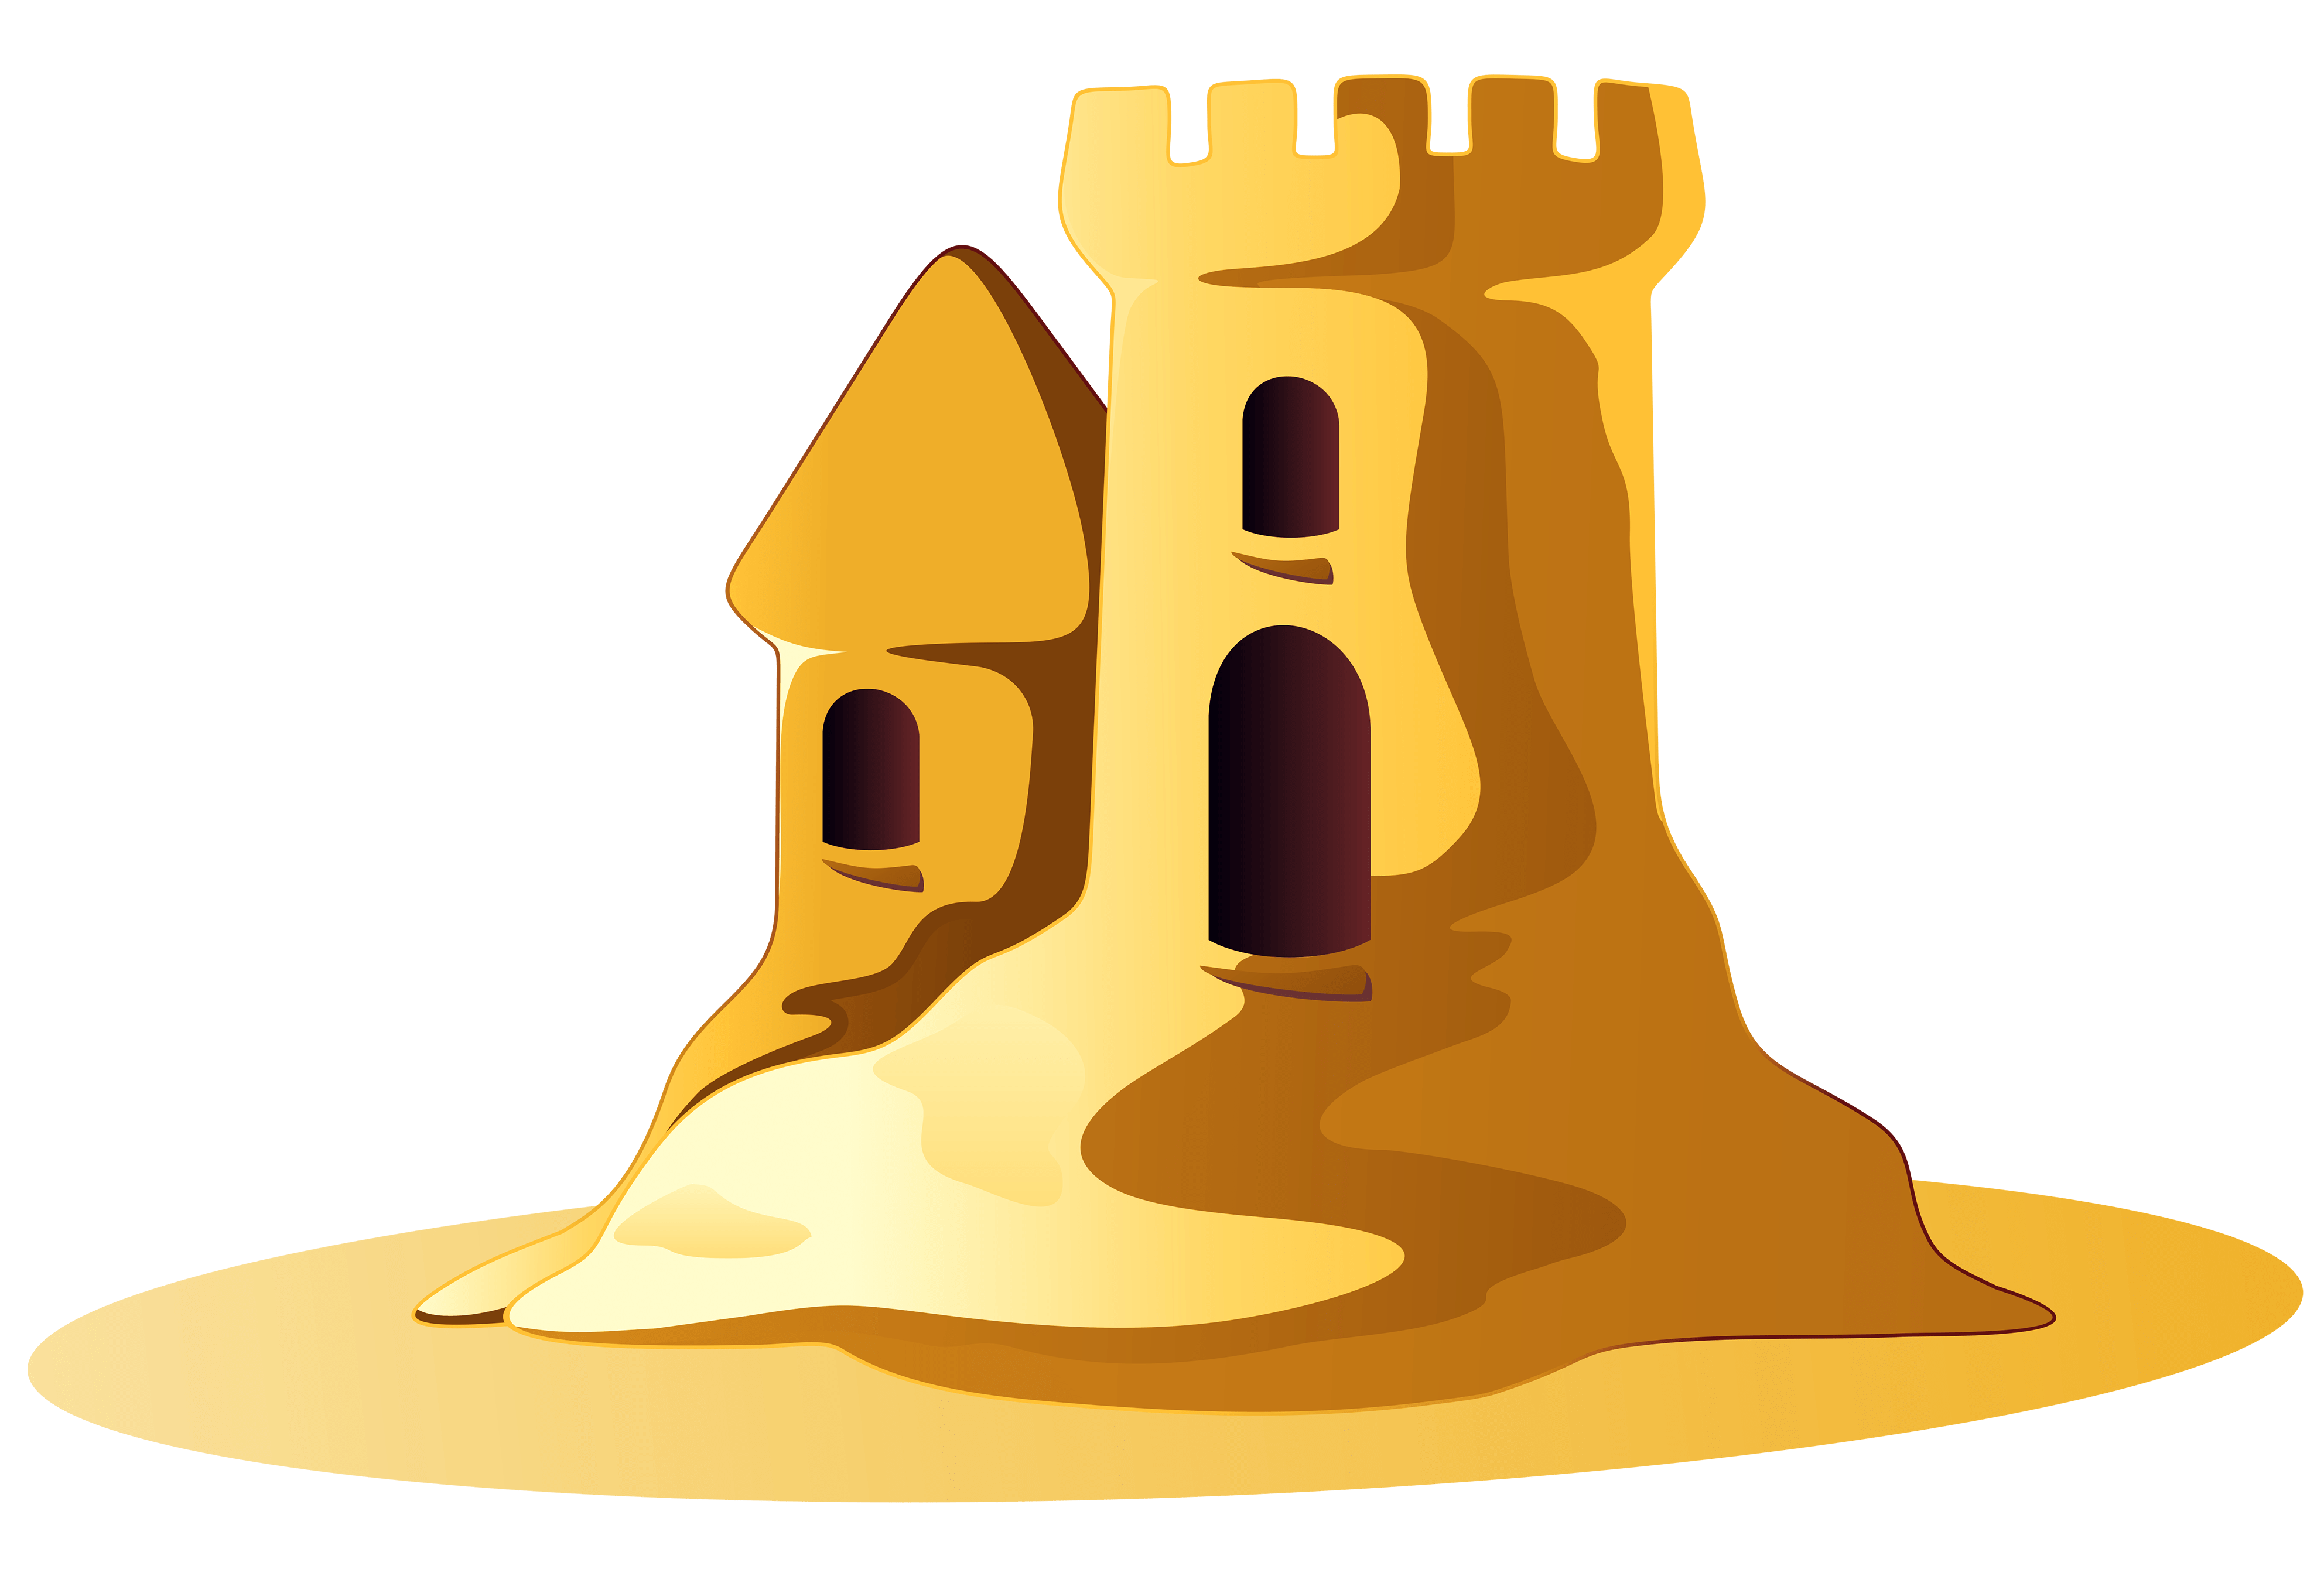 Transparent castle sand. Small clipart png stickpng